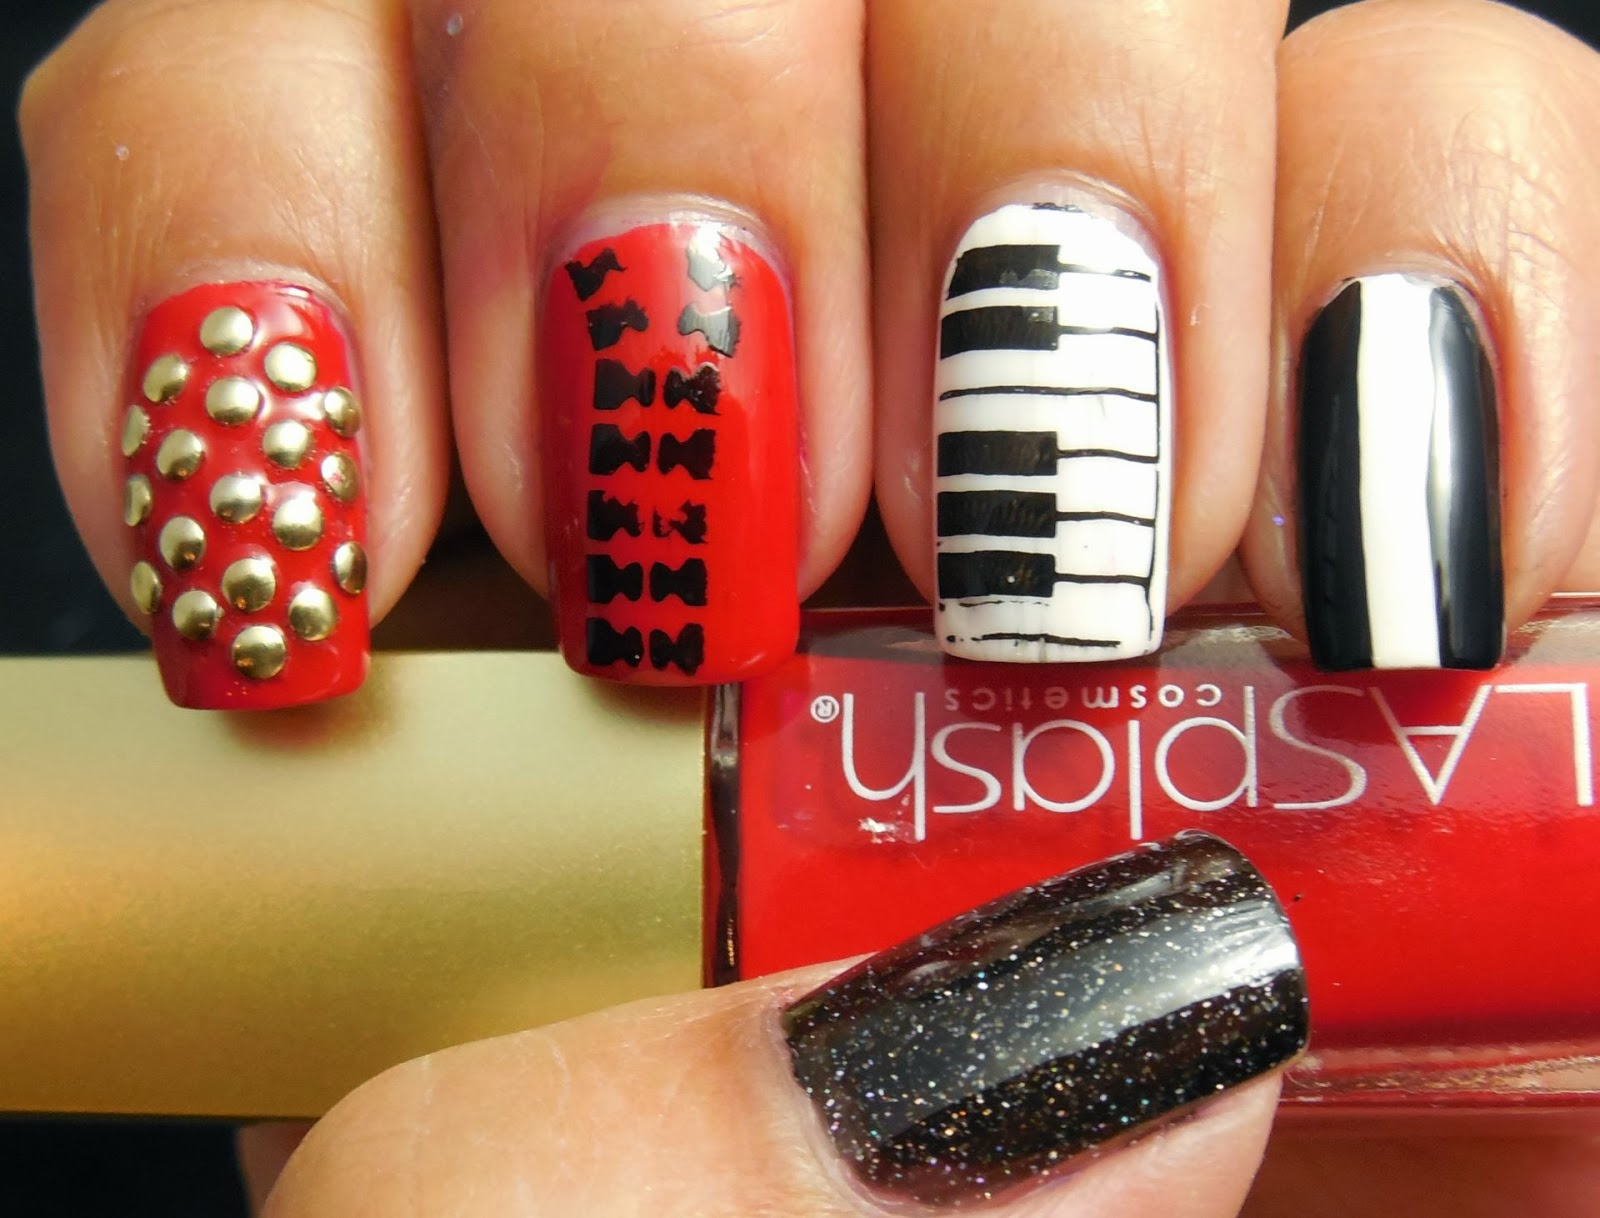 Prettytoughnails 31dc2013 Inspired By A Song Michael